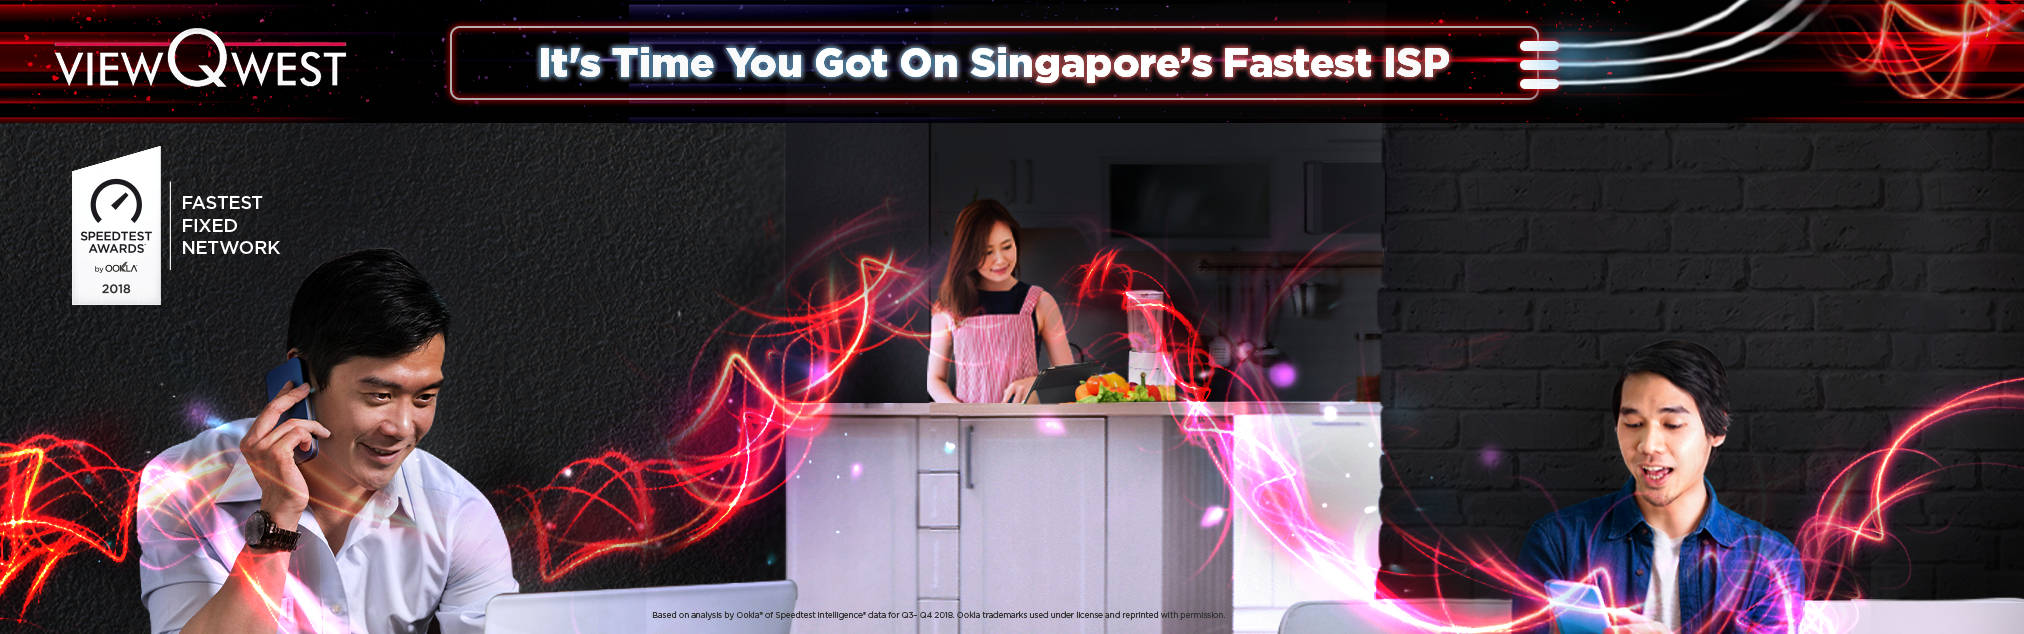 ViewQwest, Singapore's Fastest ISP